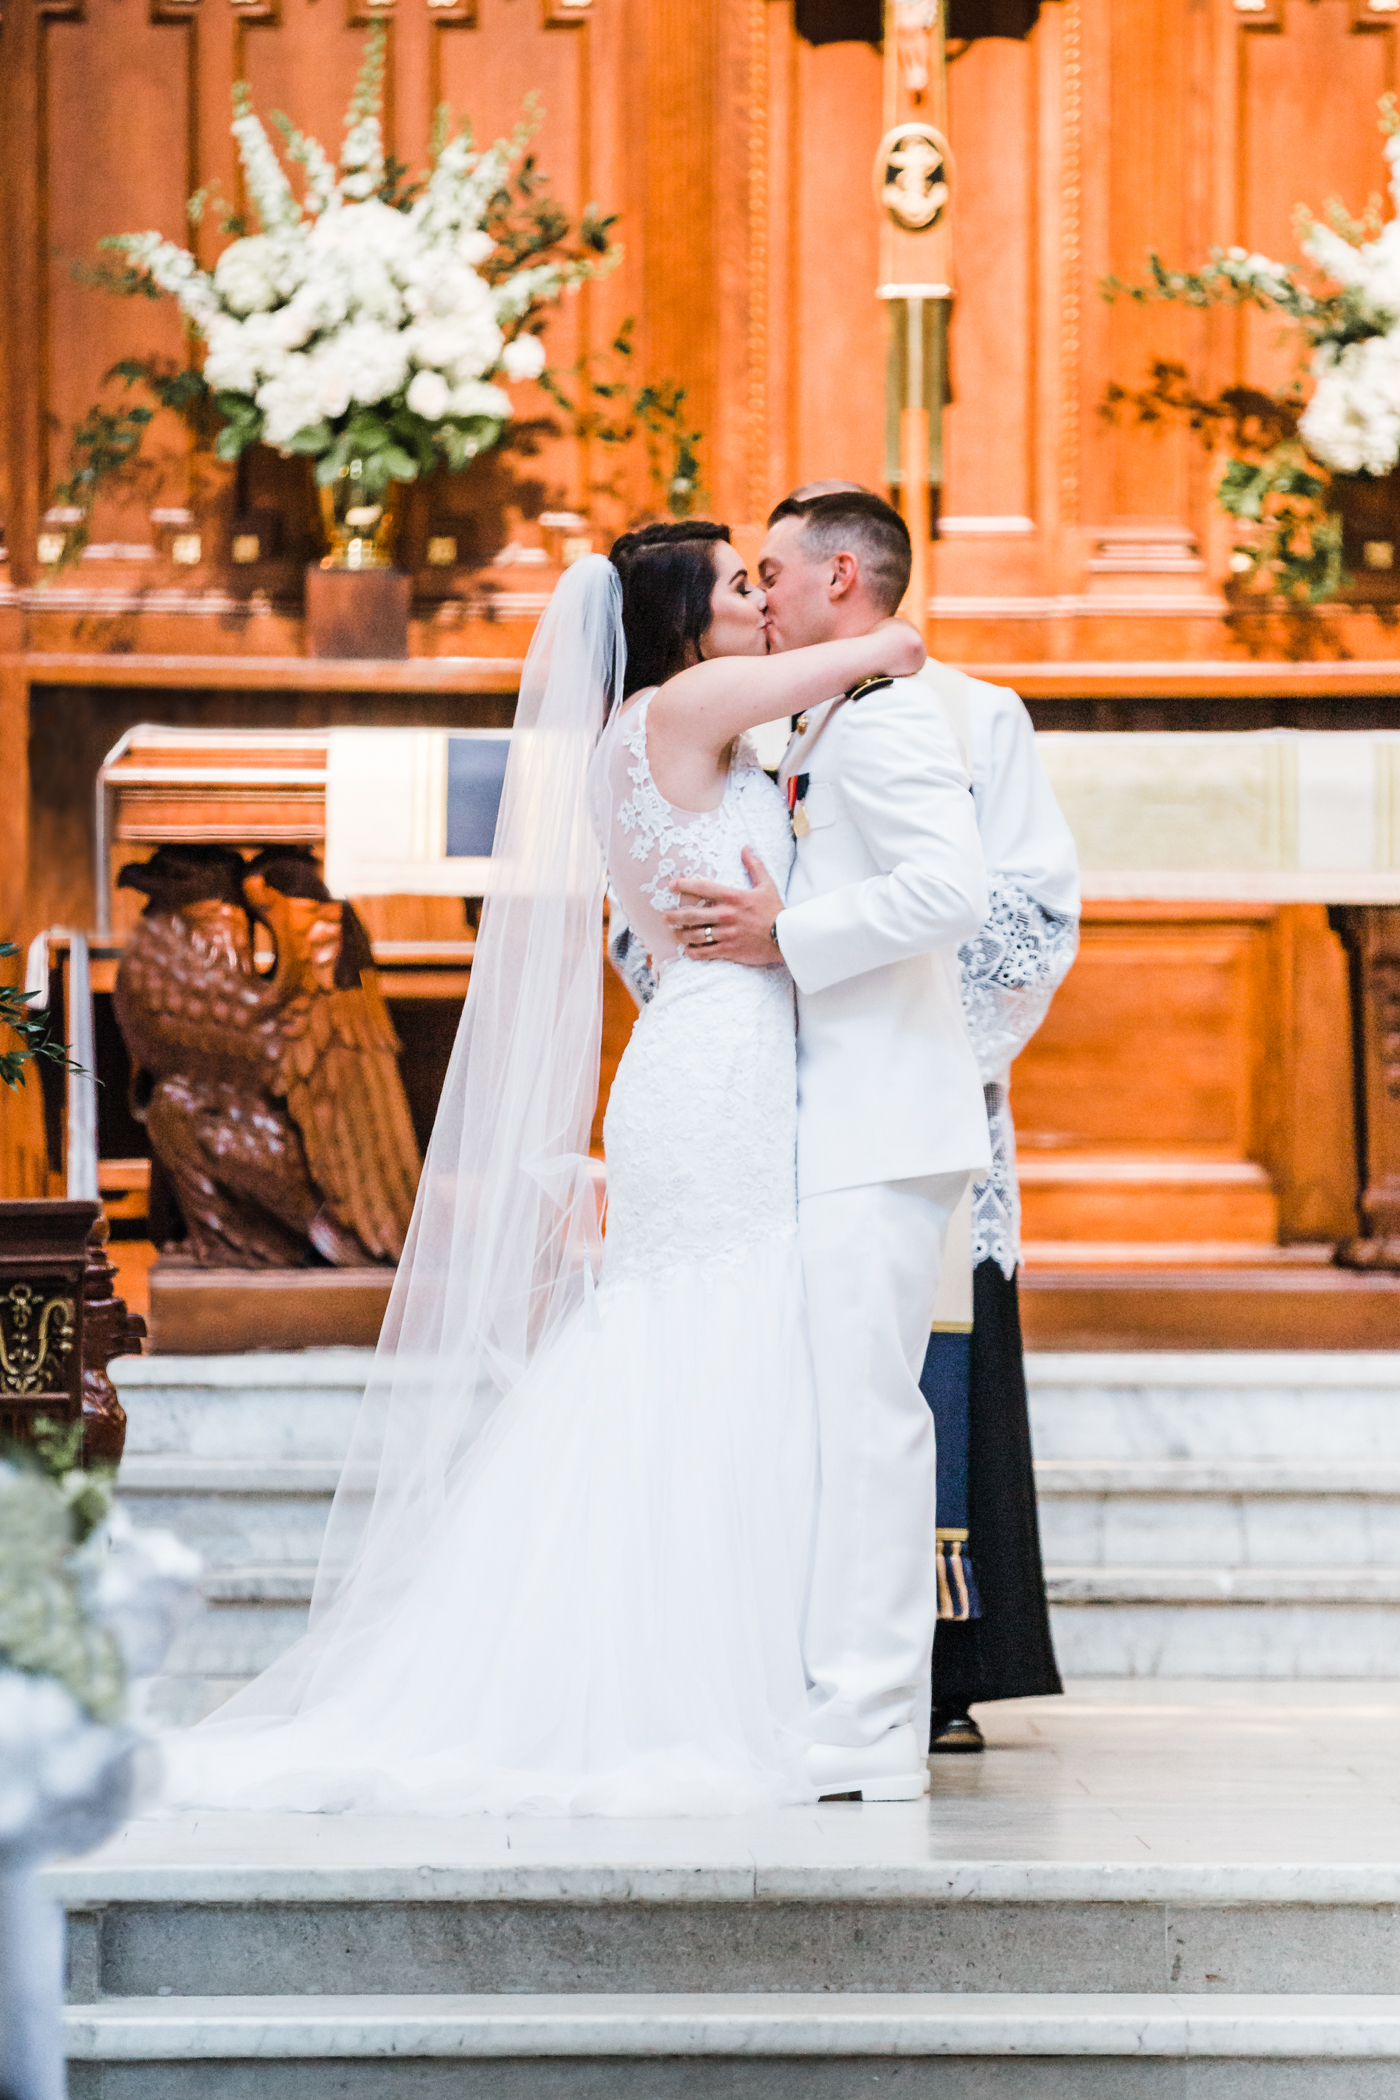 bride and groom share their first kiss - Naval Academy weddings in Annapolis, MD